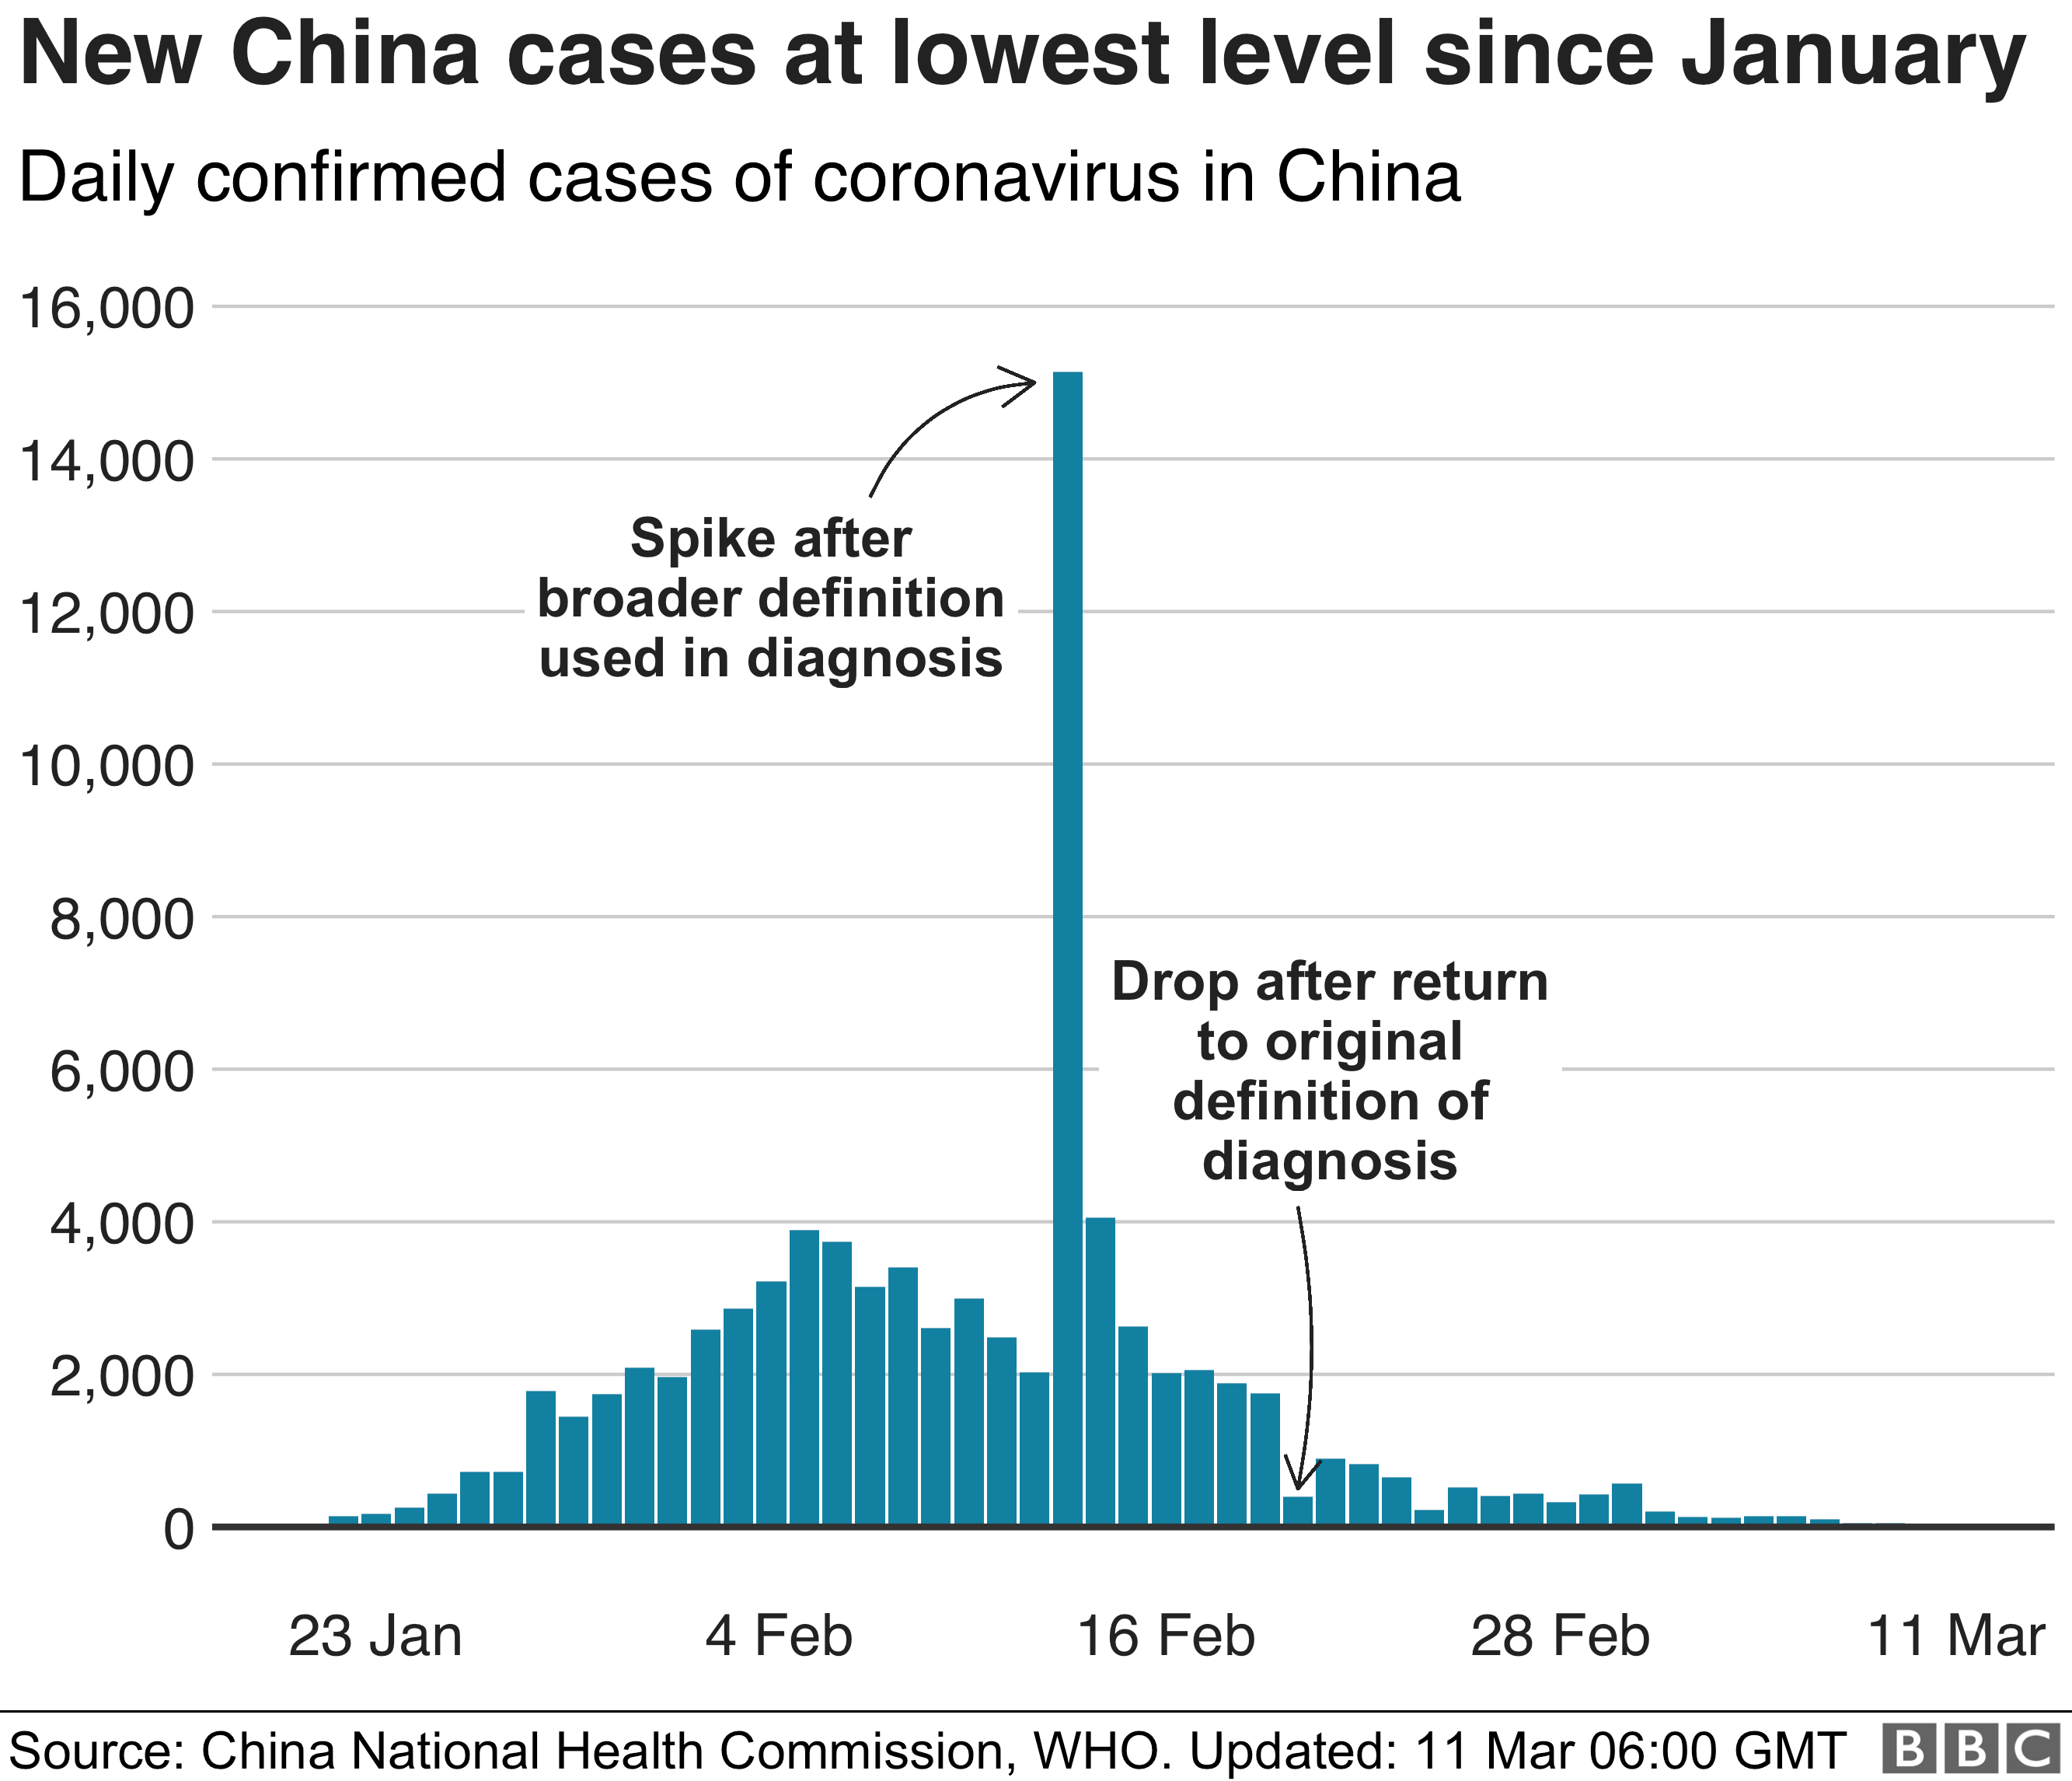 Chart showing the daily cases in China, which has been falling in recent days 11 March